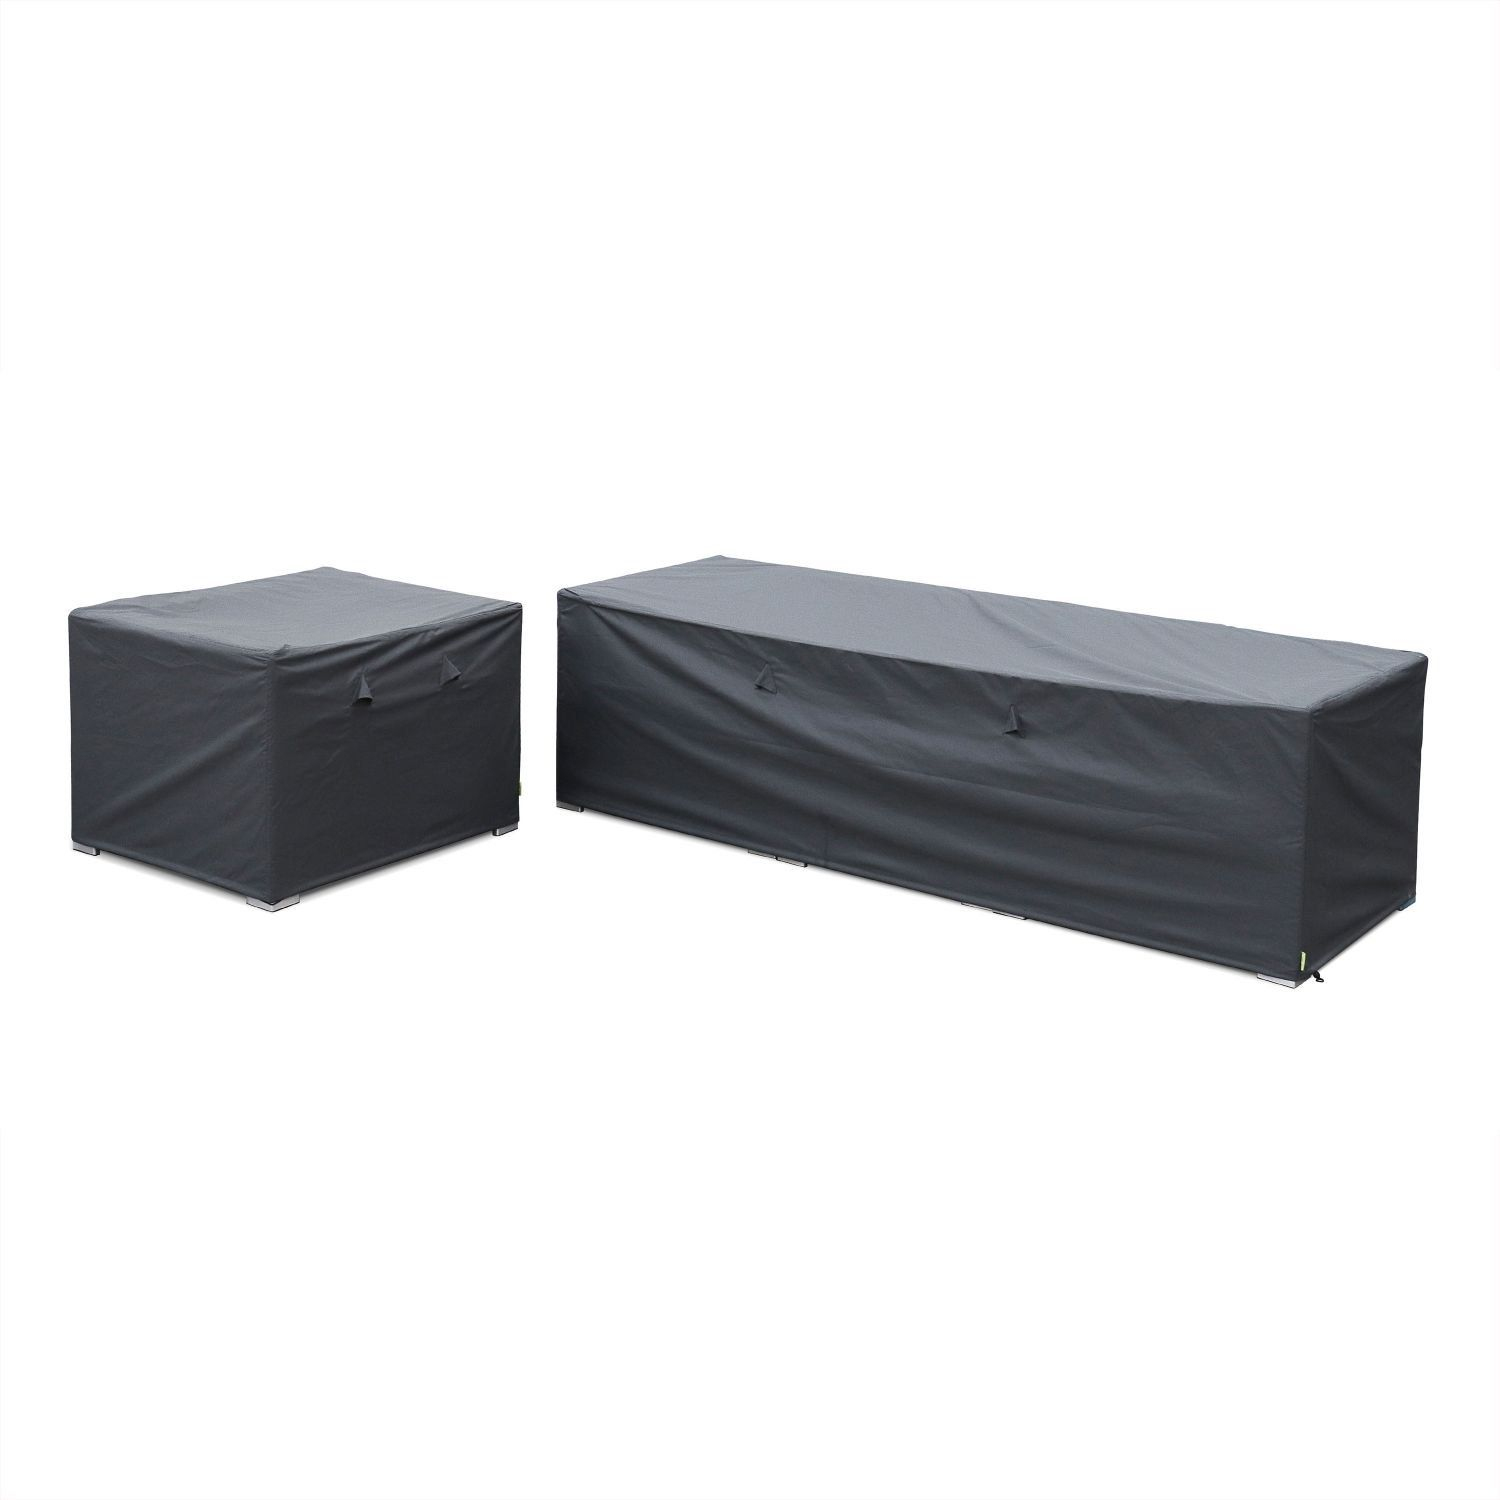 Protective Covers For Caligari And Vinci Garden Furniture ... pour Alice Garden Caligari